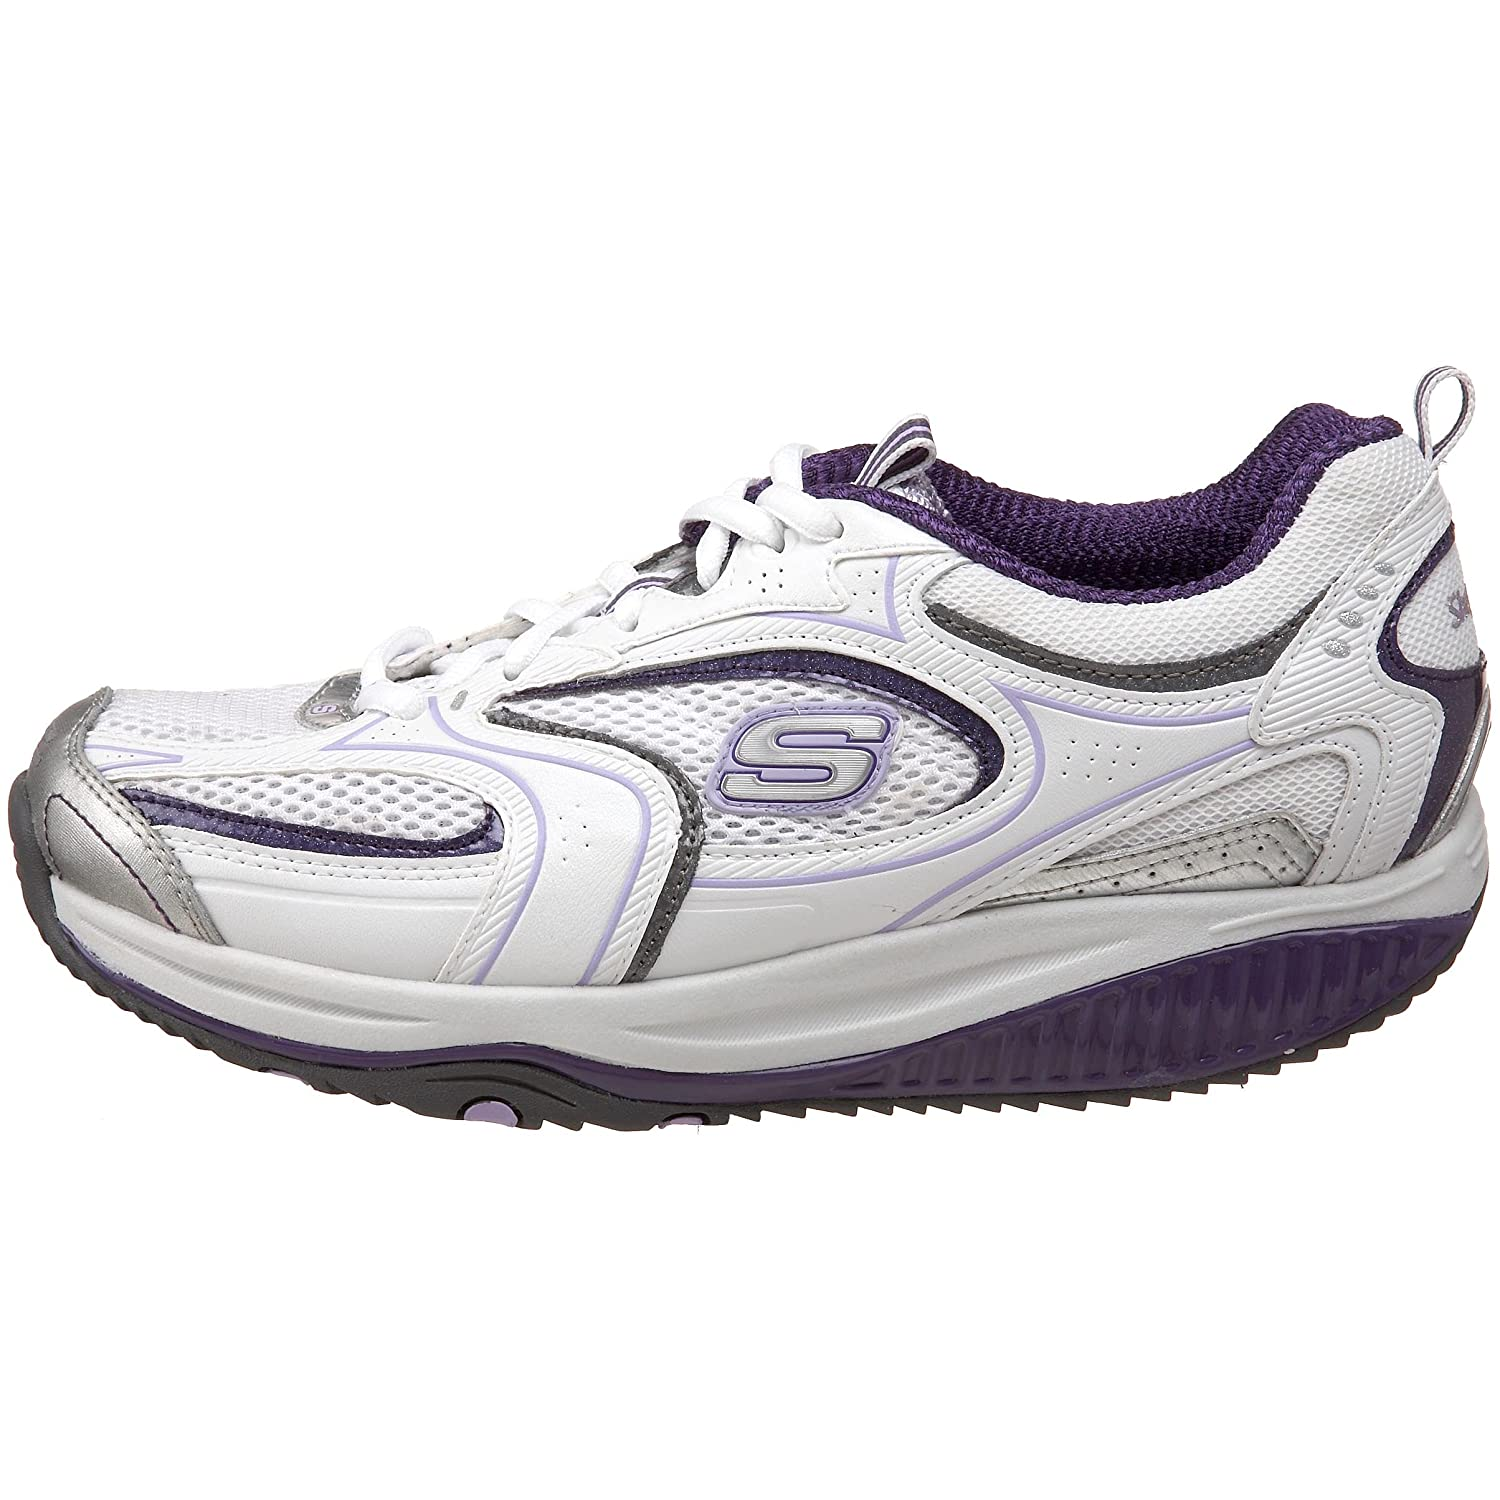 Skechers Shape Ups Xf Accelerators Damen, WhitePurple, 37.5 zpn0M